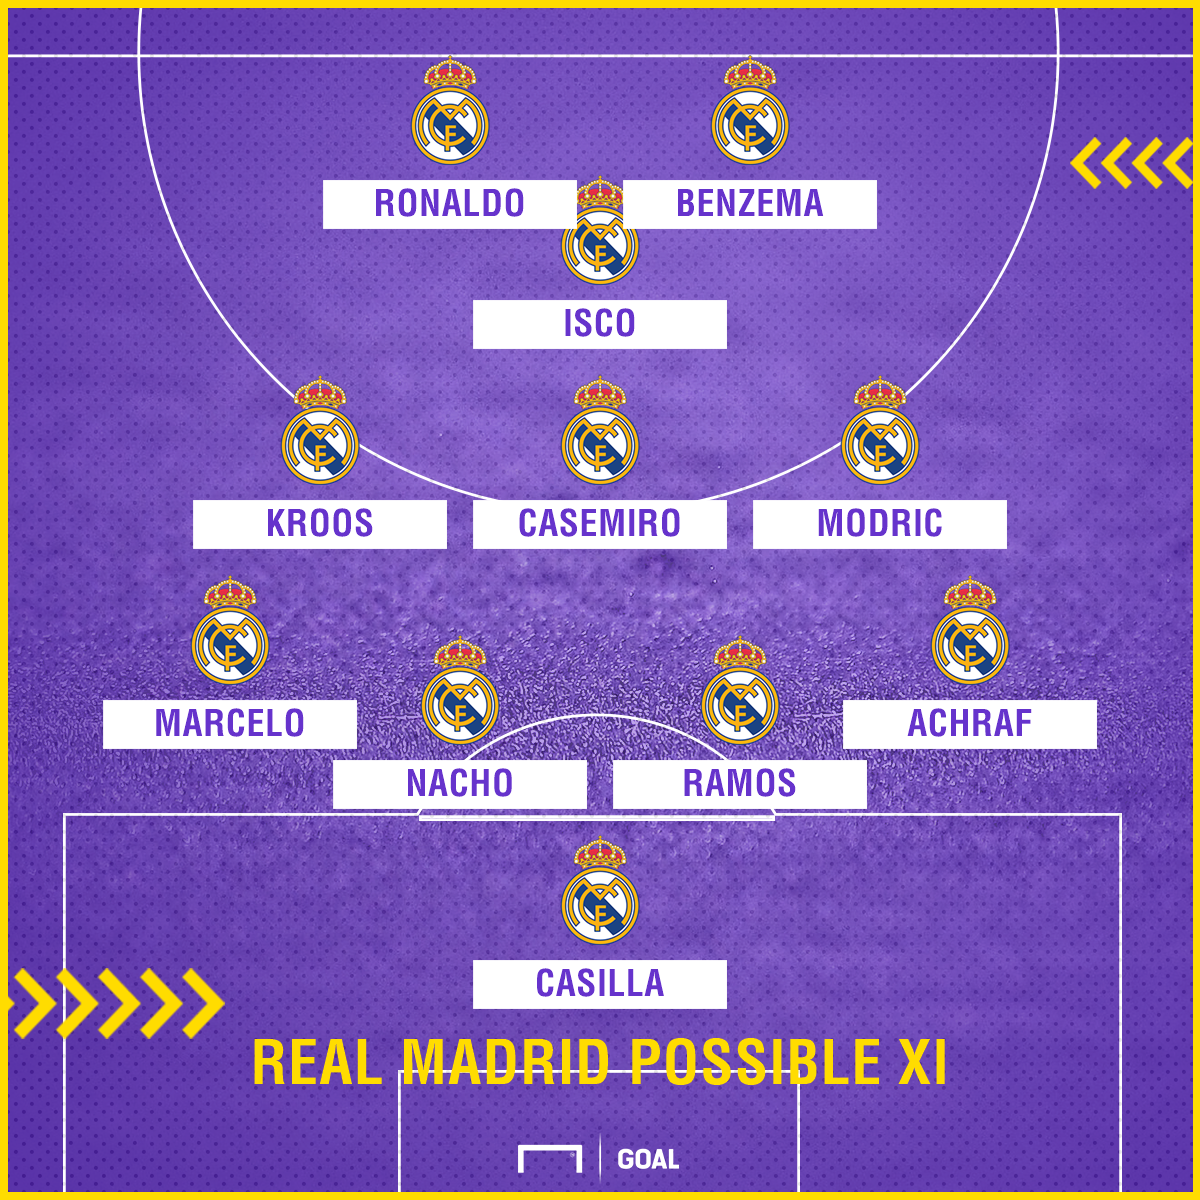 Real Madrid Eibar possible